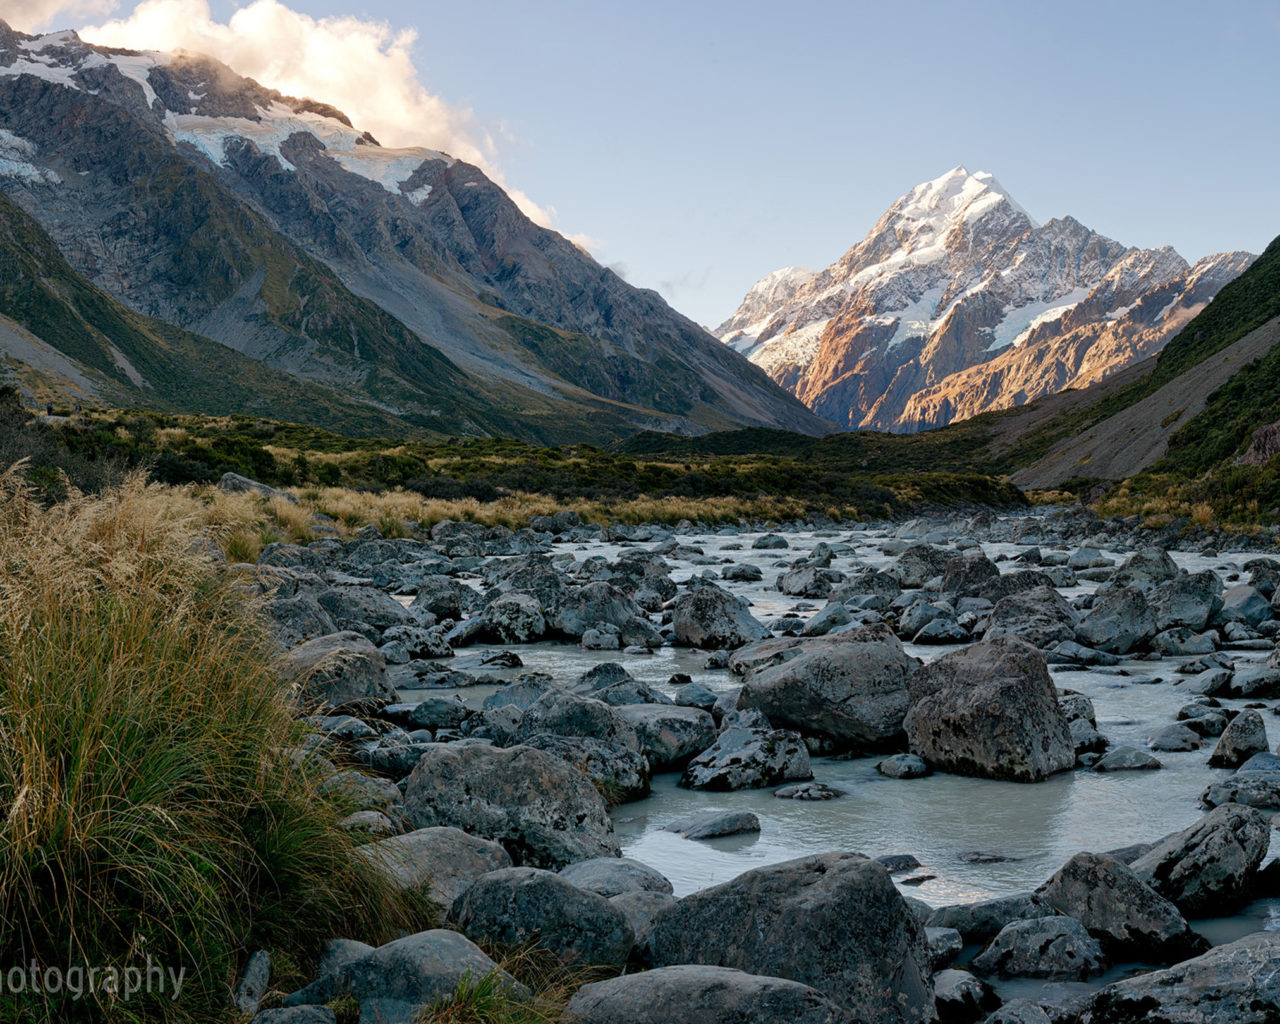 Iphone X Full Wallpaper Size Mount Cook River Panorama Rocky Mountains Snow Rock Blue